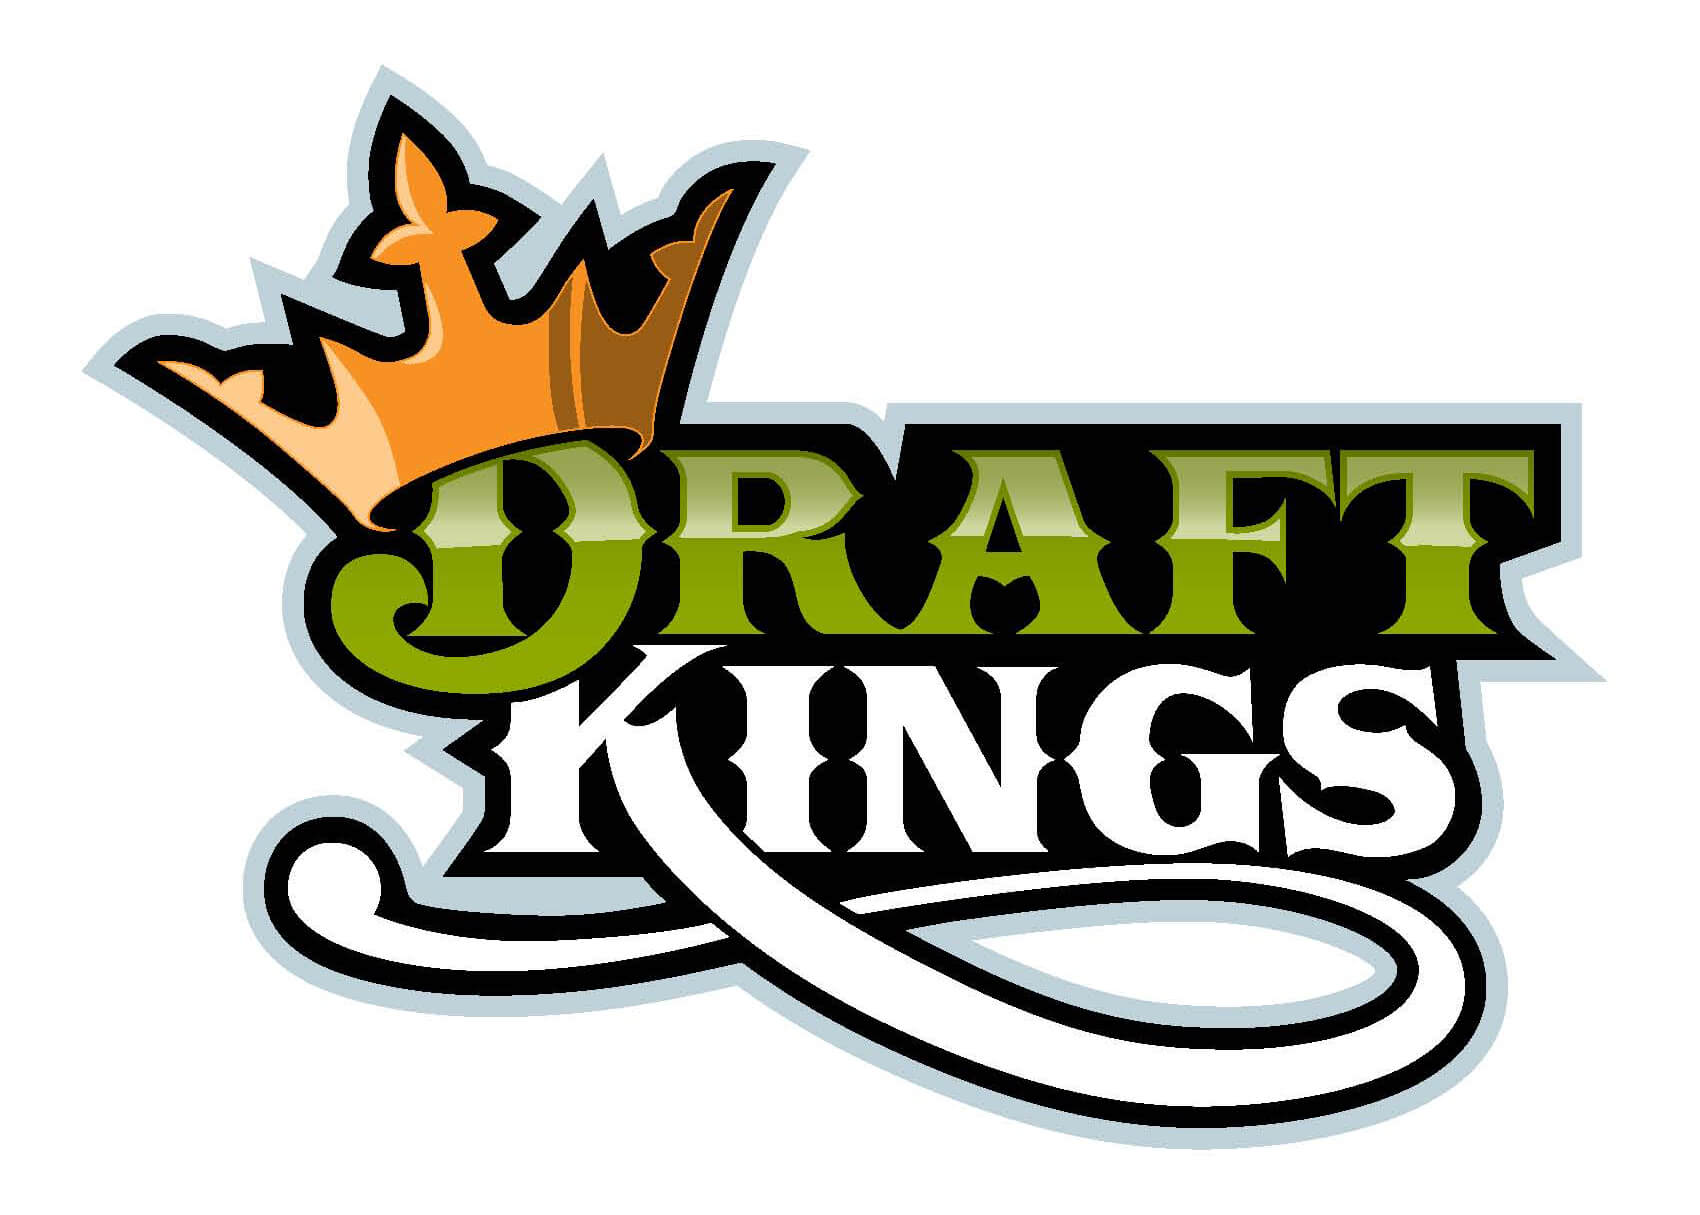 DraftKings promo code to win $2 million